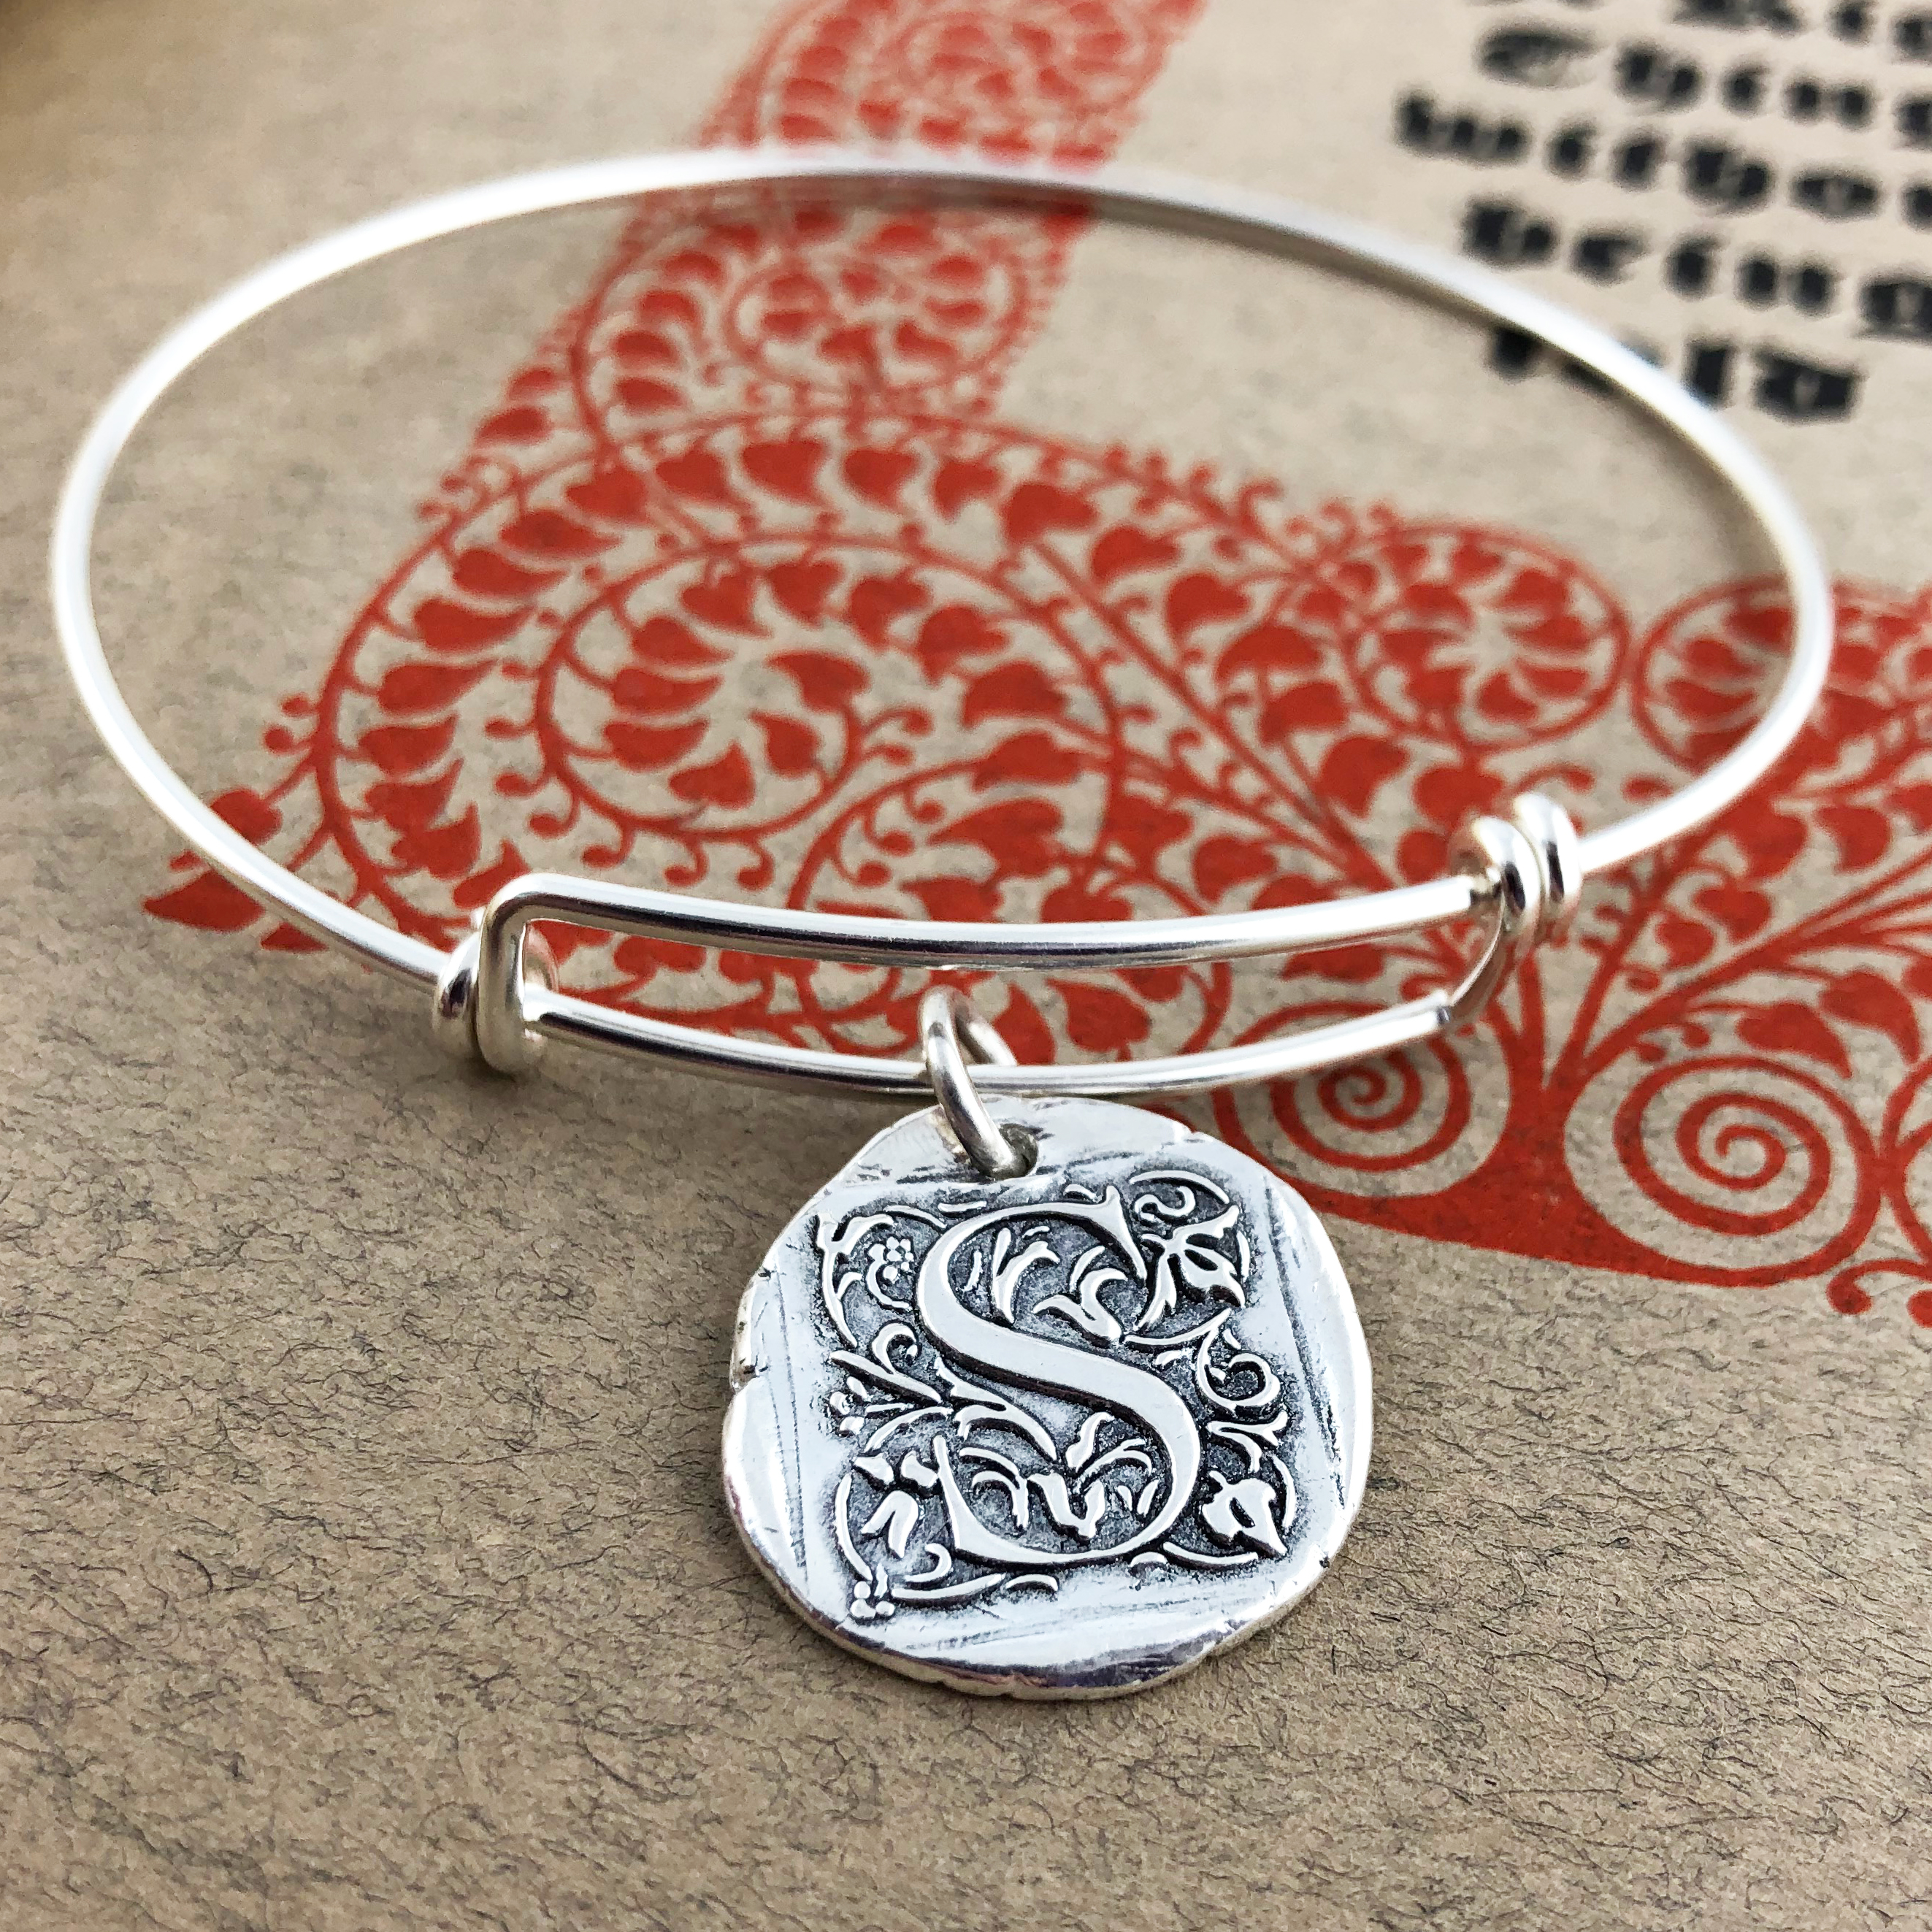 Initial Cap Wax Seal Inspired Bangle Bracelet